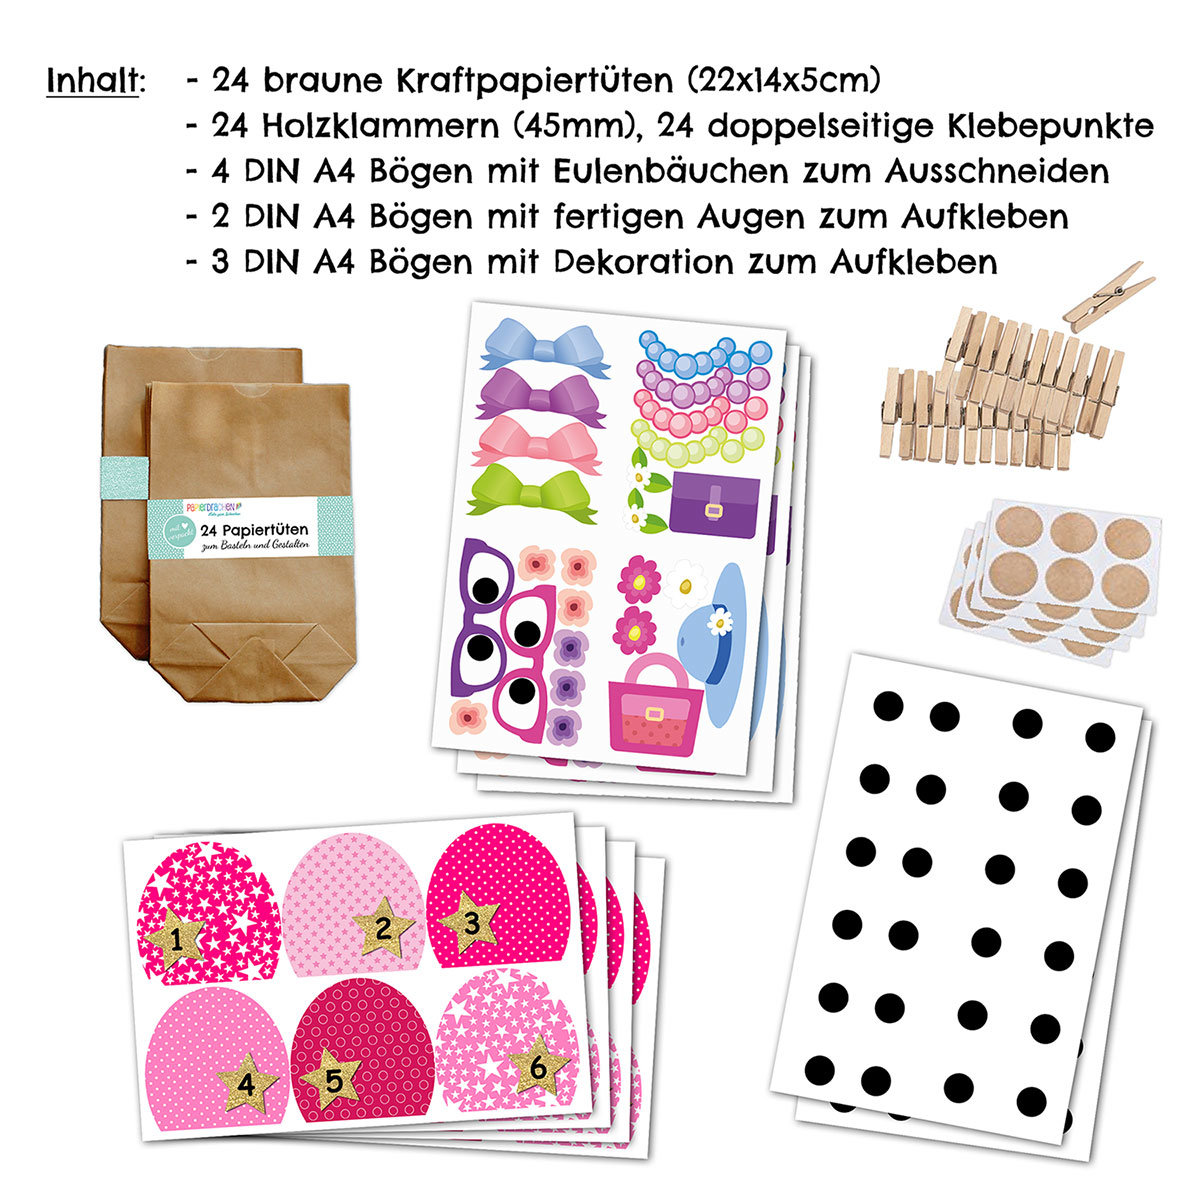 diy einhorn adventskalender zum selber basteln weihnachten zum bef llen mit 24 t ten zum. Black Bedroom Furniture Sets. Home Design Ideas